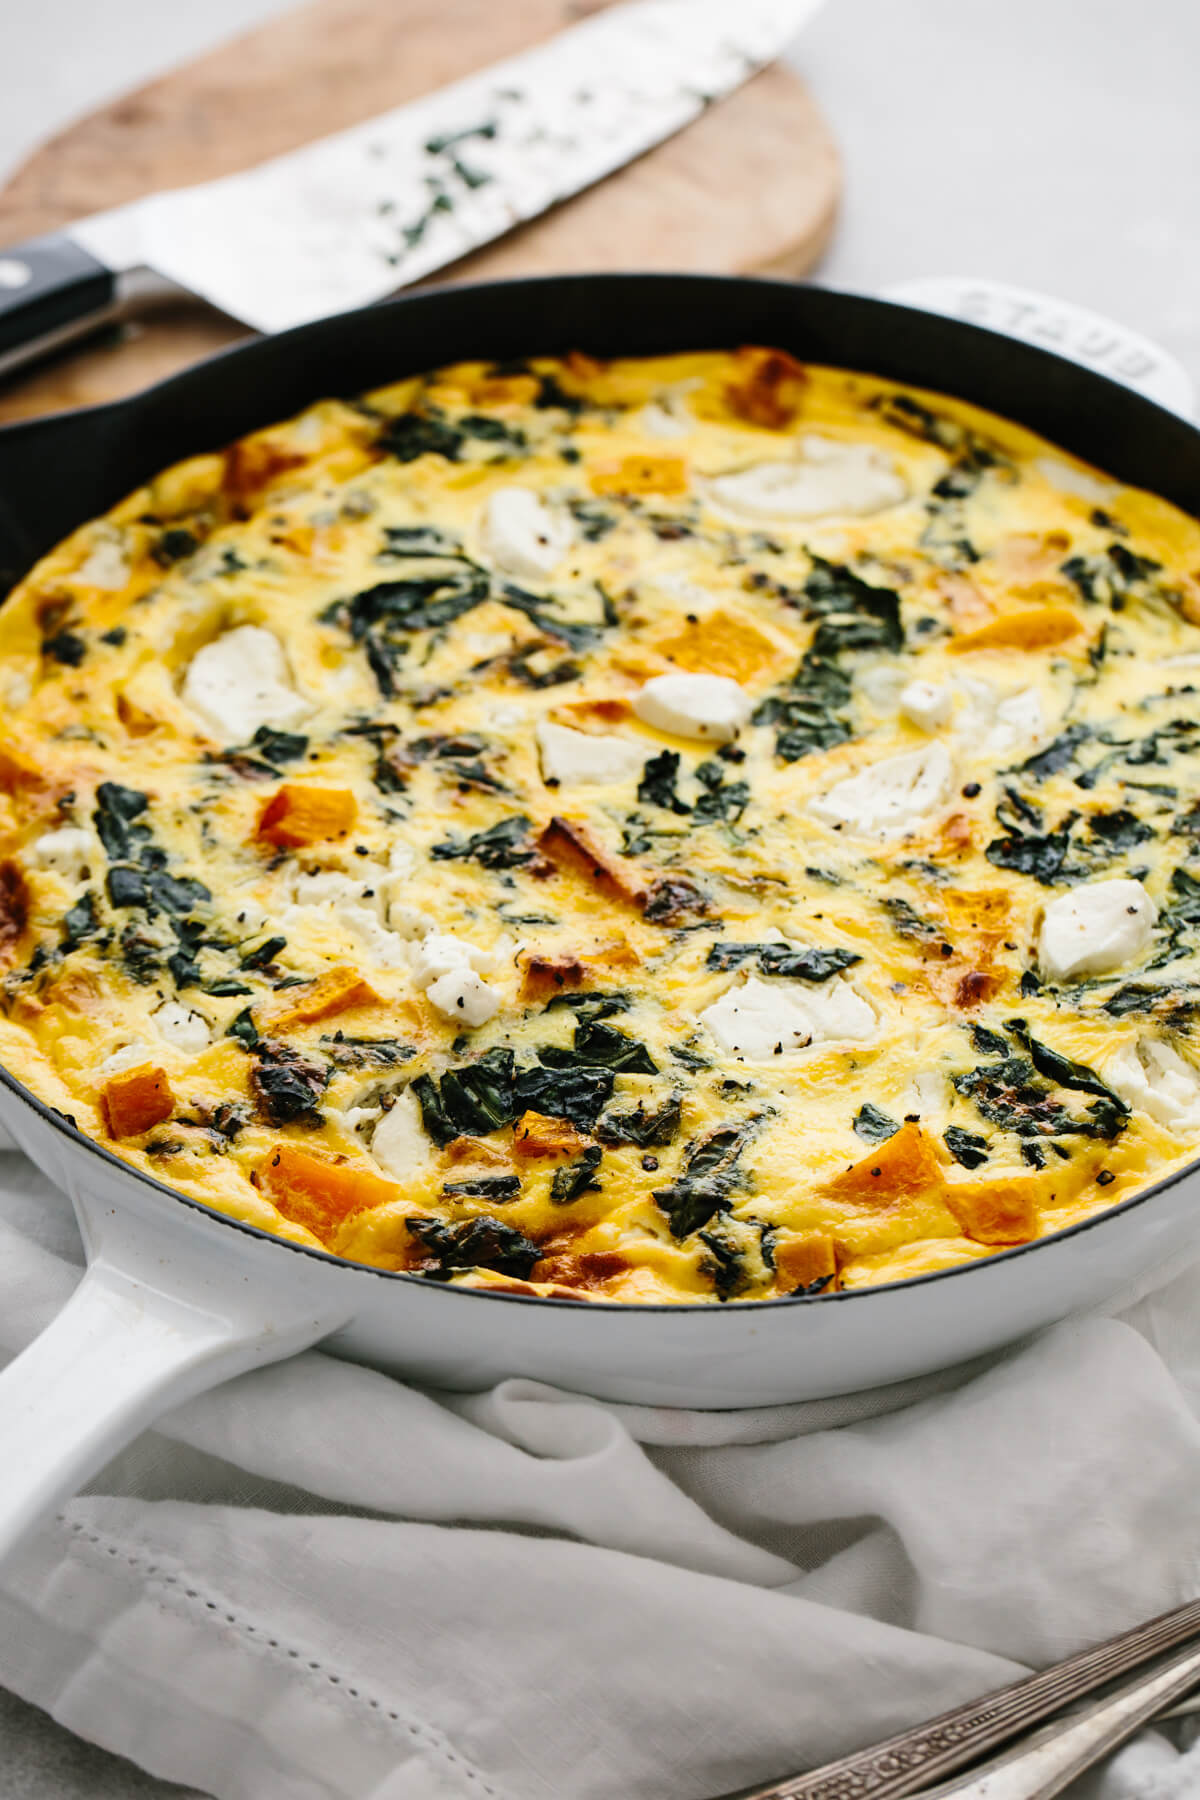 Butternut squash frittata served on a table.